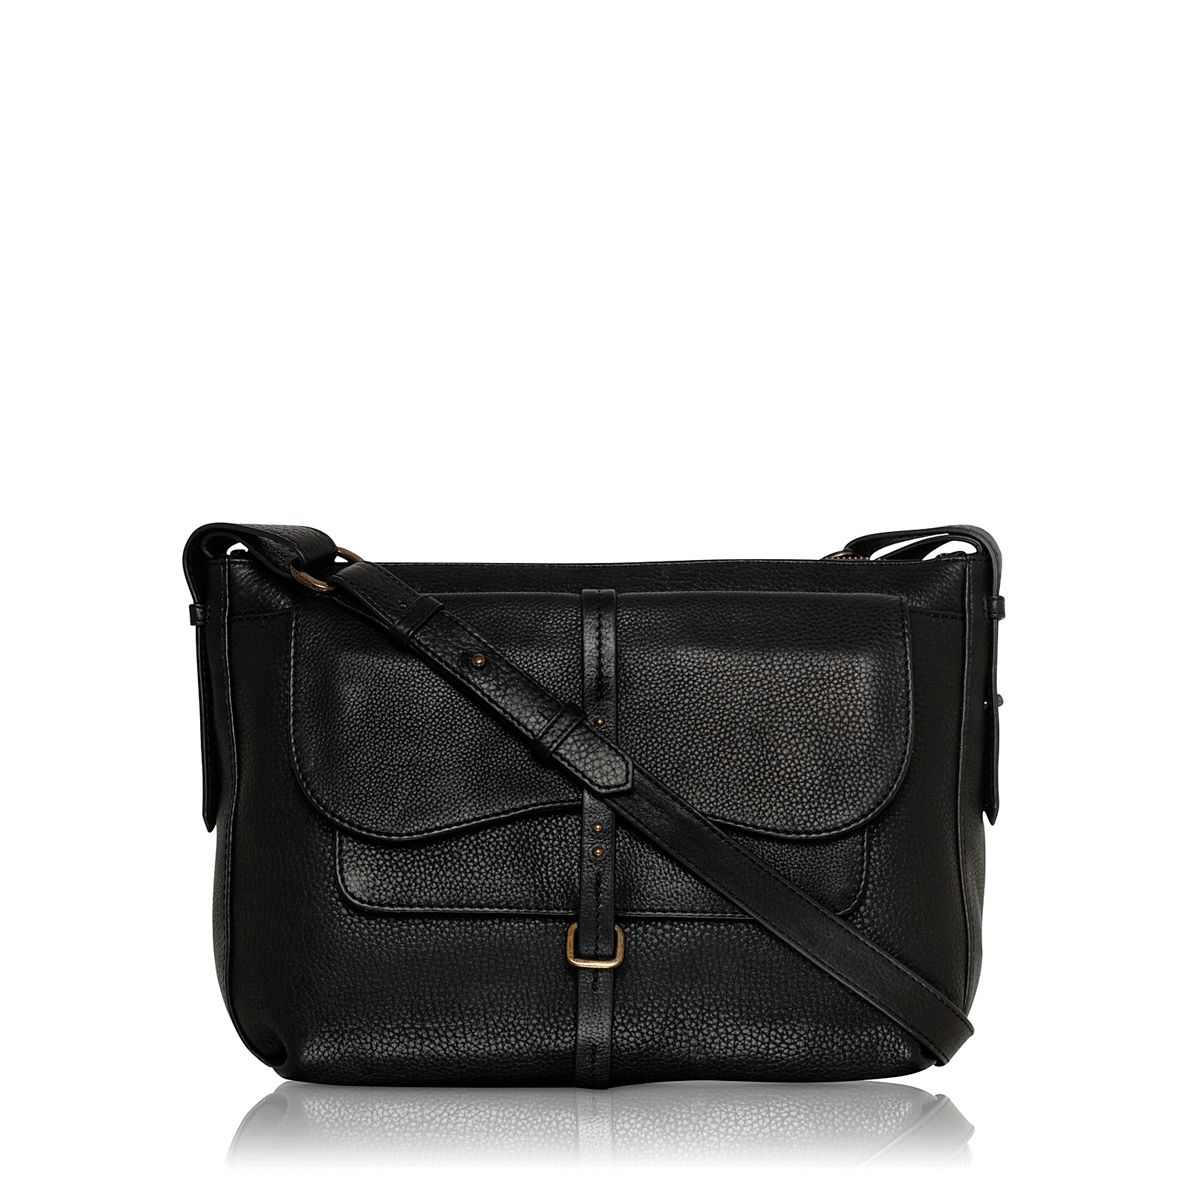 Grosvenor medium leather black crossbody handbag